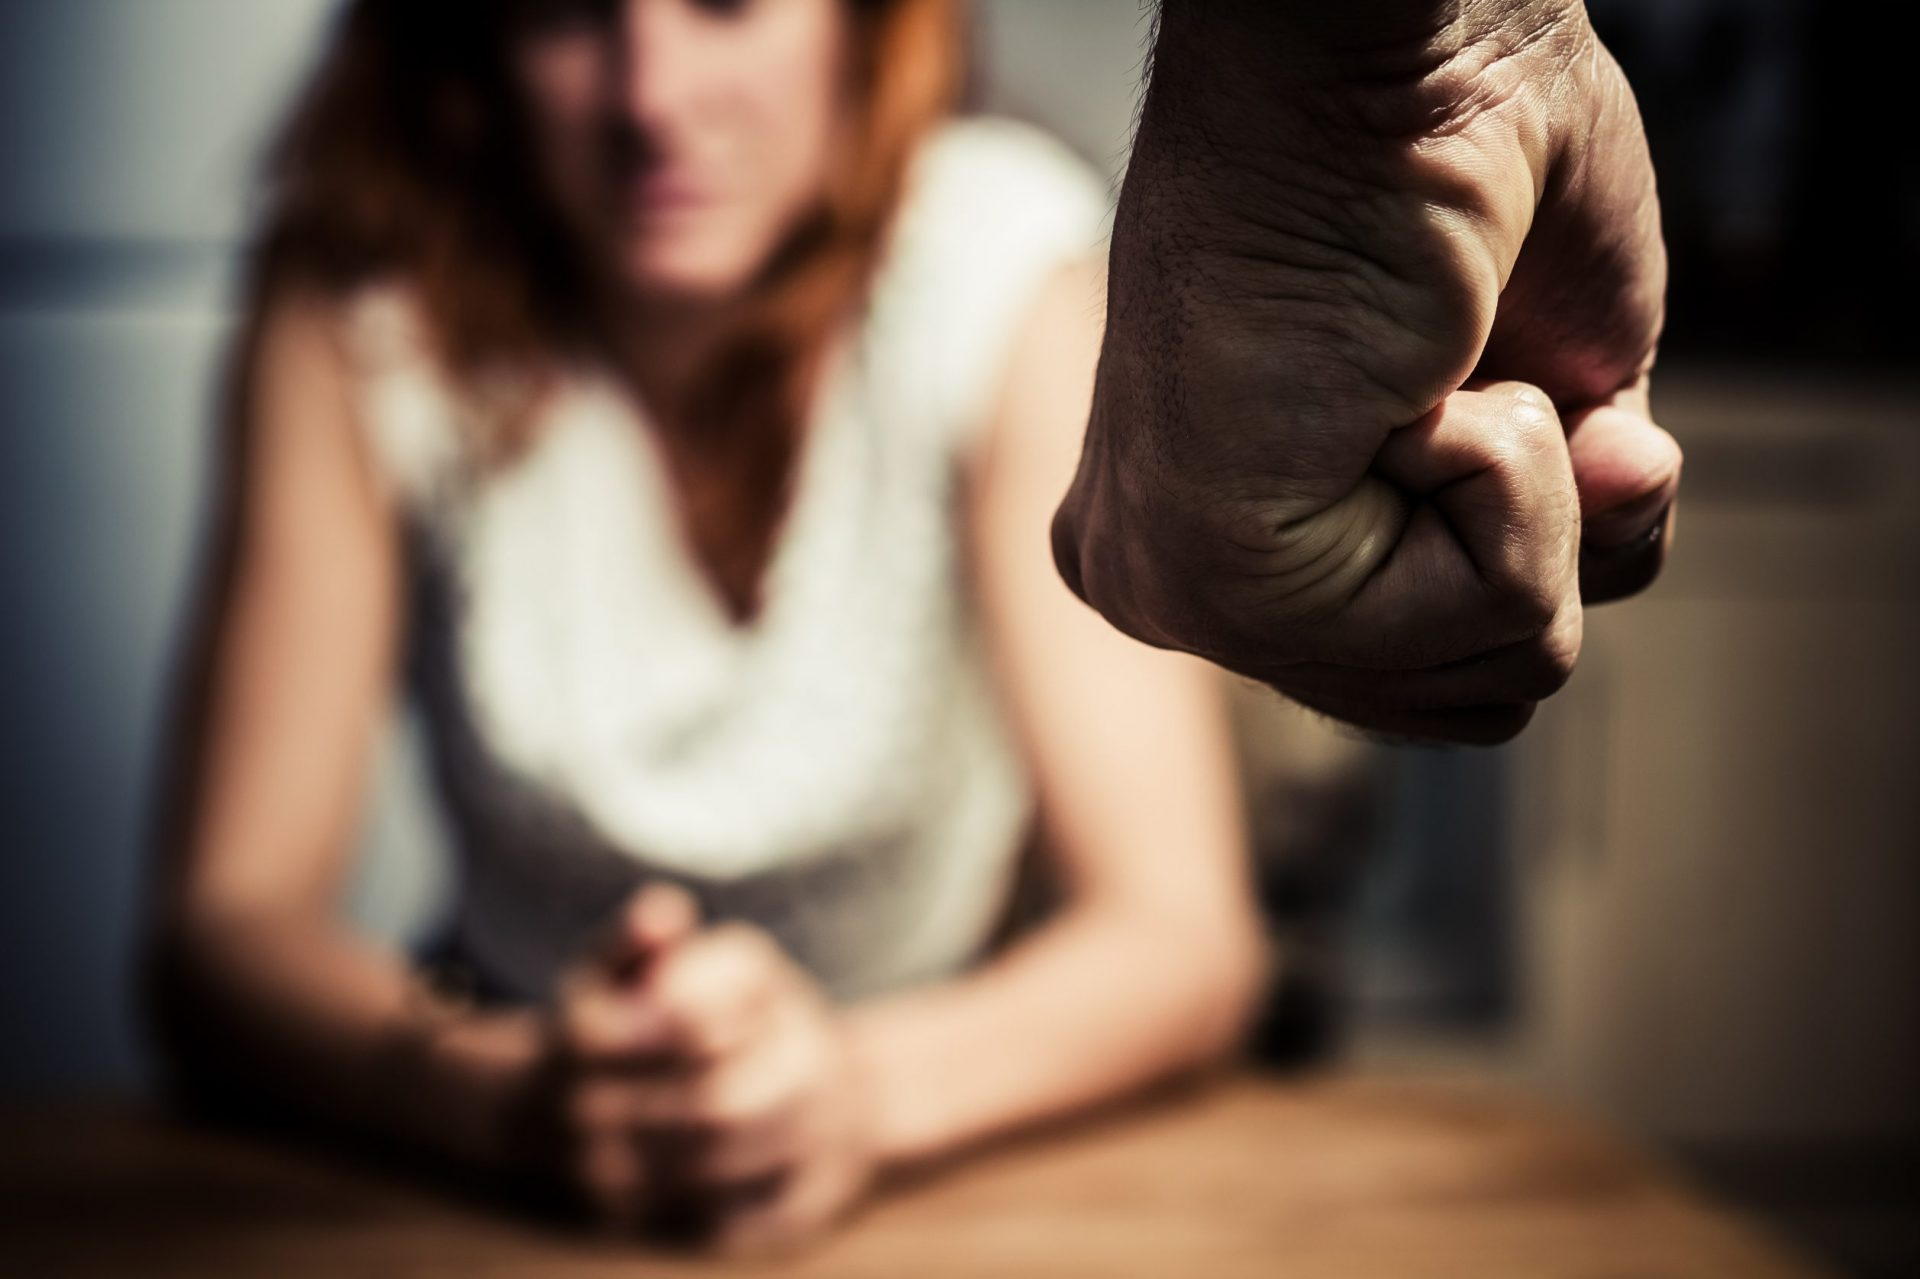 Domestic abuse: man with clenched fist, sitting woman in background